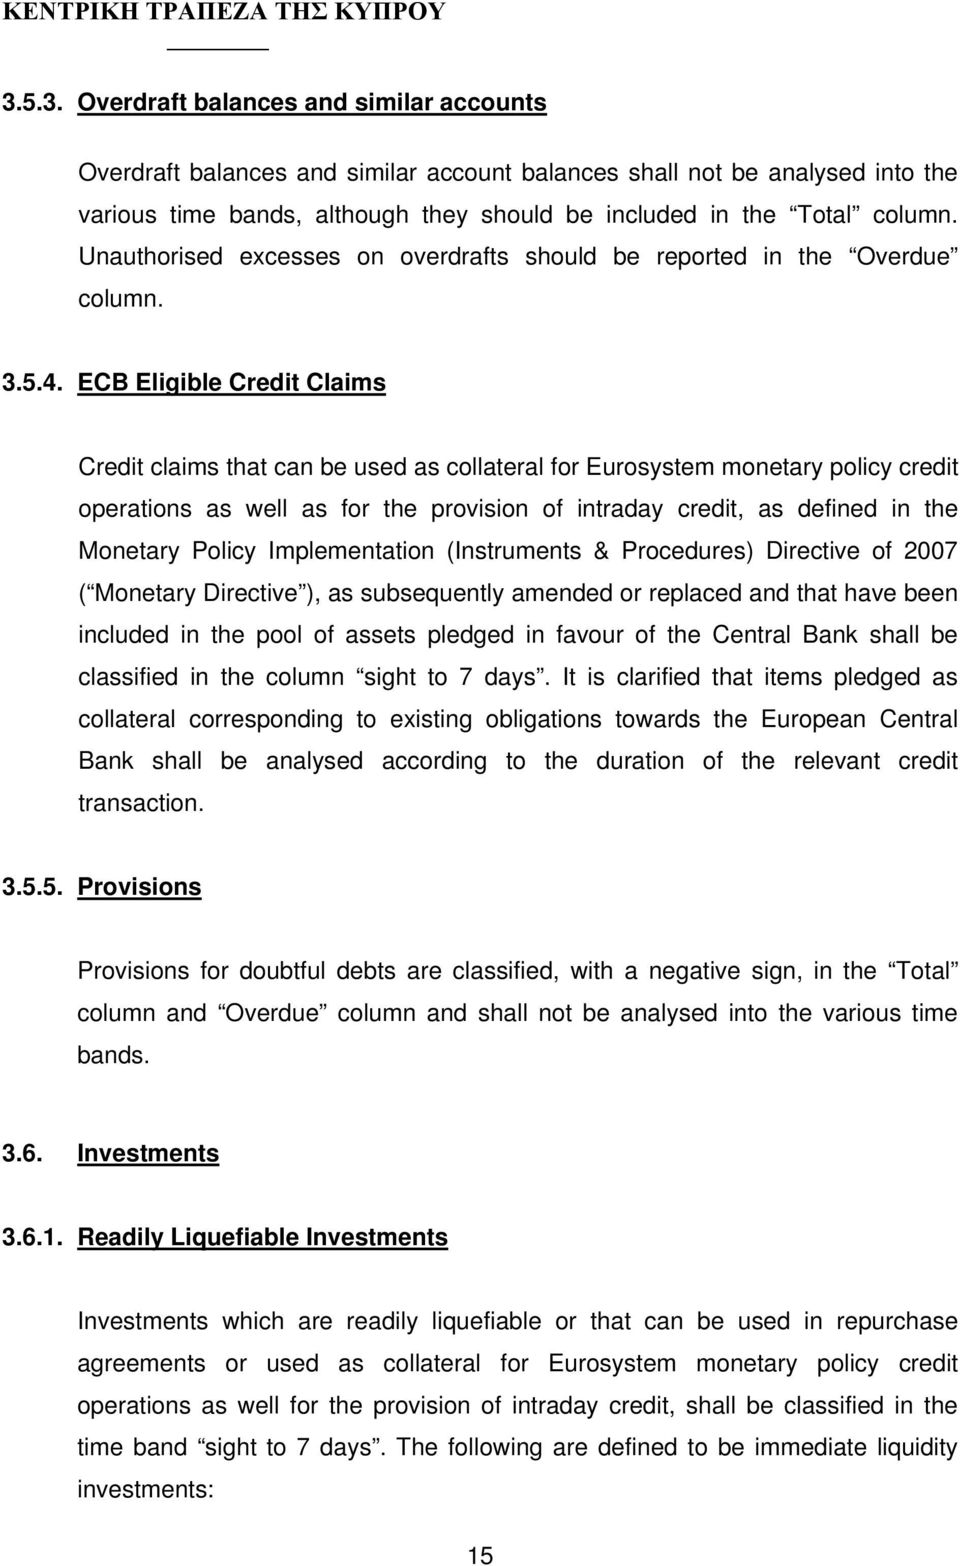 ECB Eligible Credit Claims Credit claims that can be used as collateral for Eurosystem monetary policy credit operations as well as for the provision of intraday credit, as defined in the Monetary